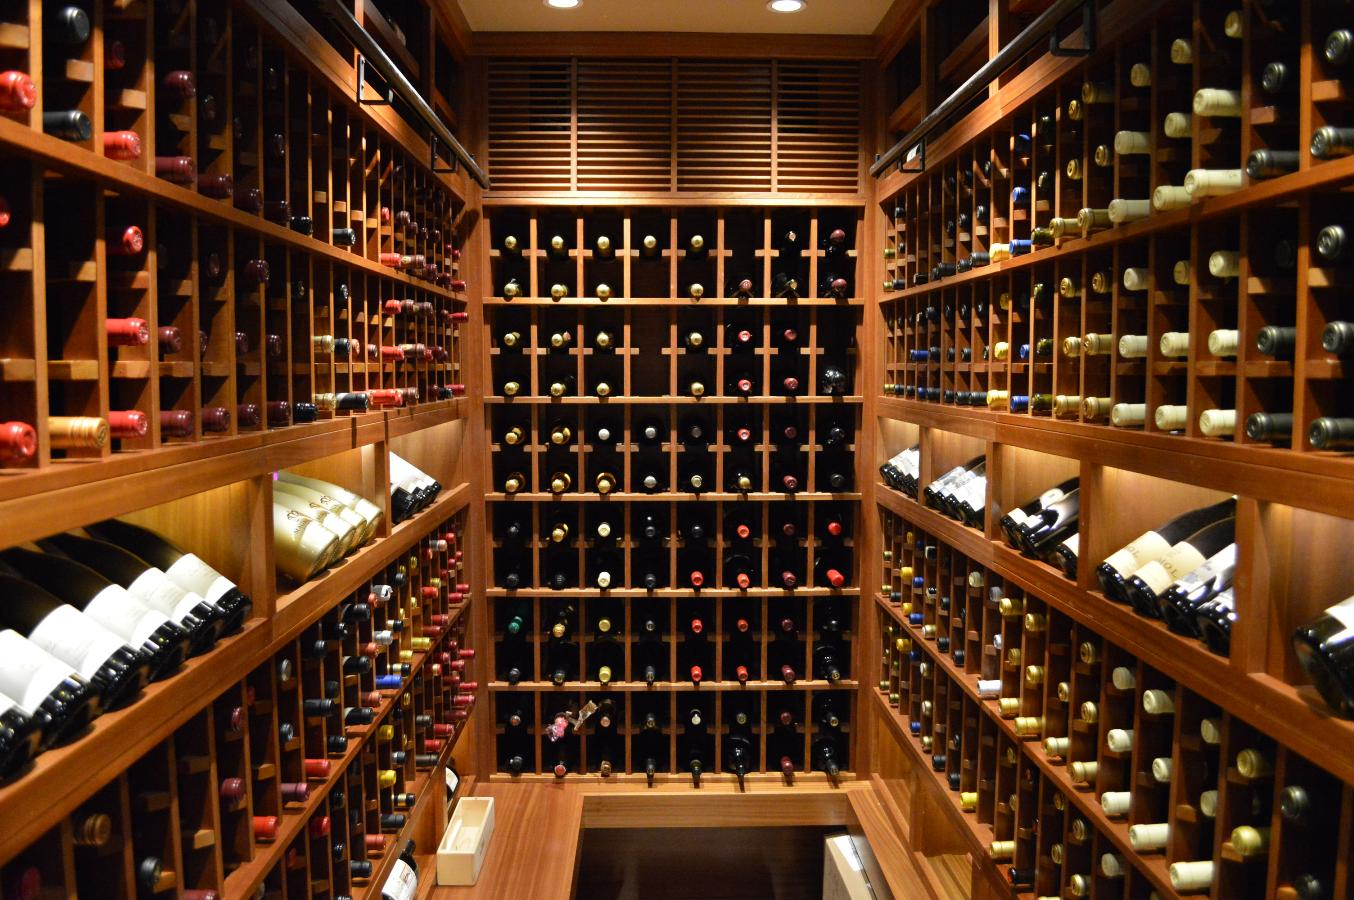 Contemporay Wine Cellar Design Canada Master Builders. 0